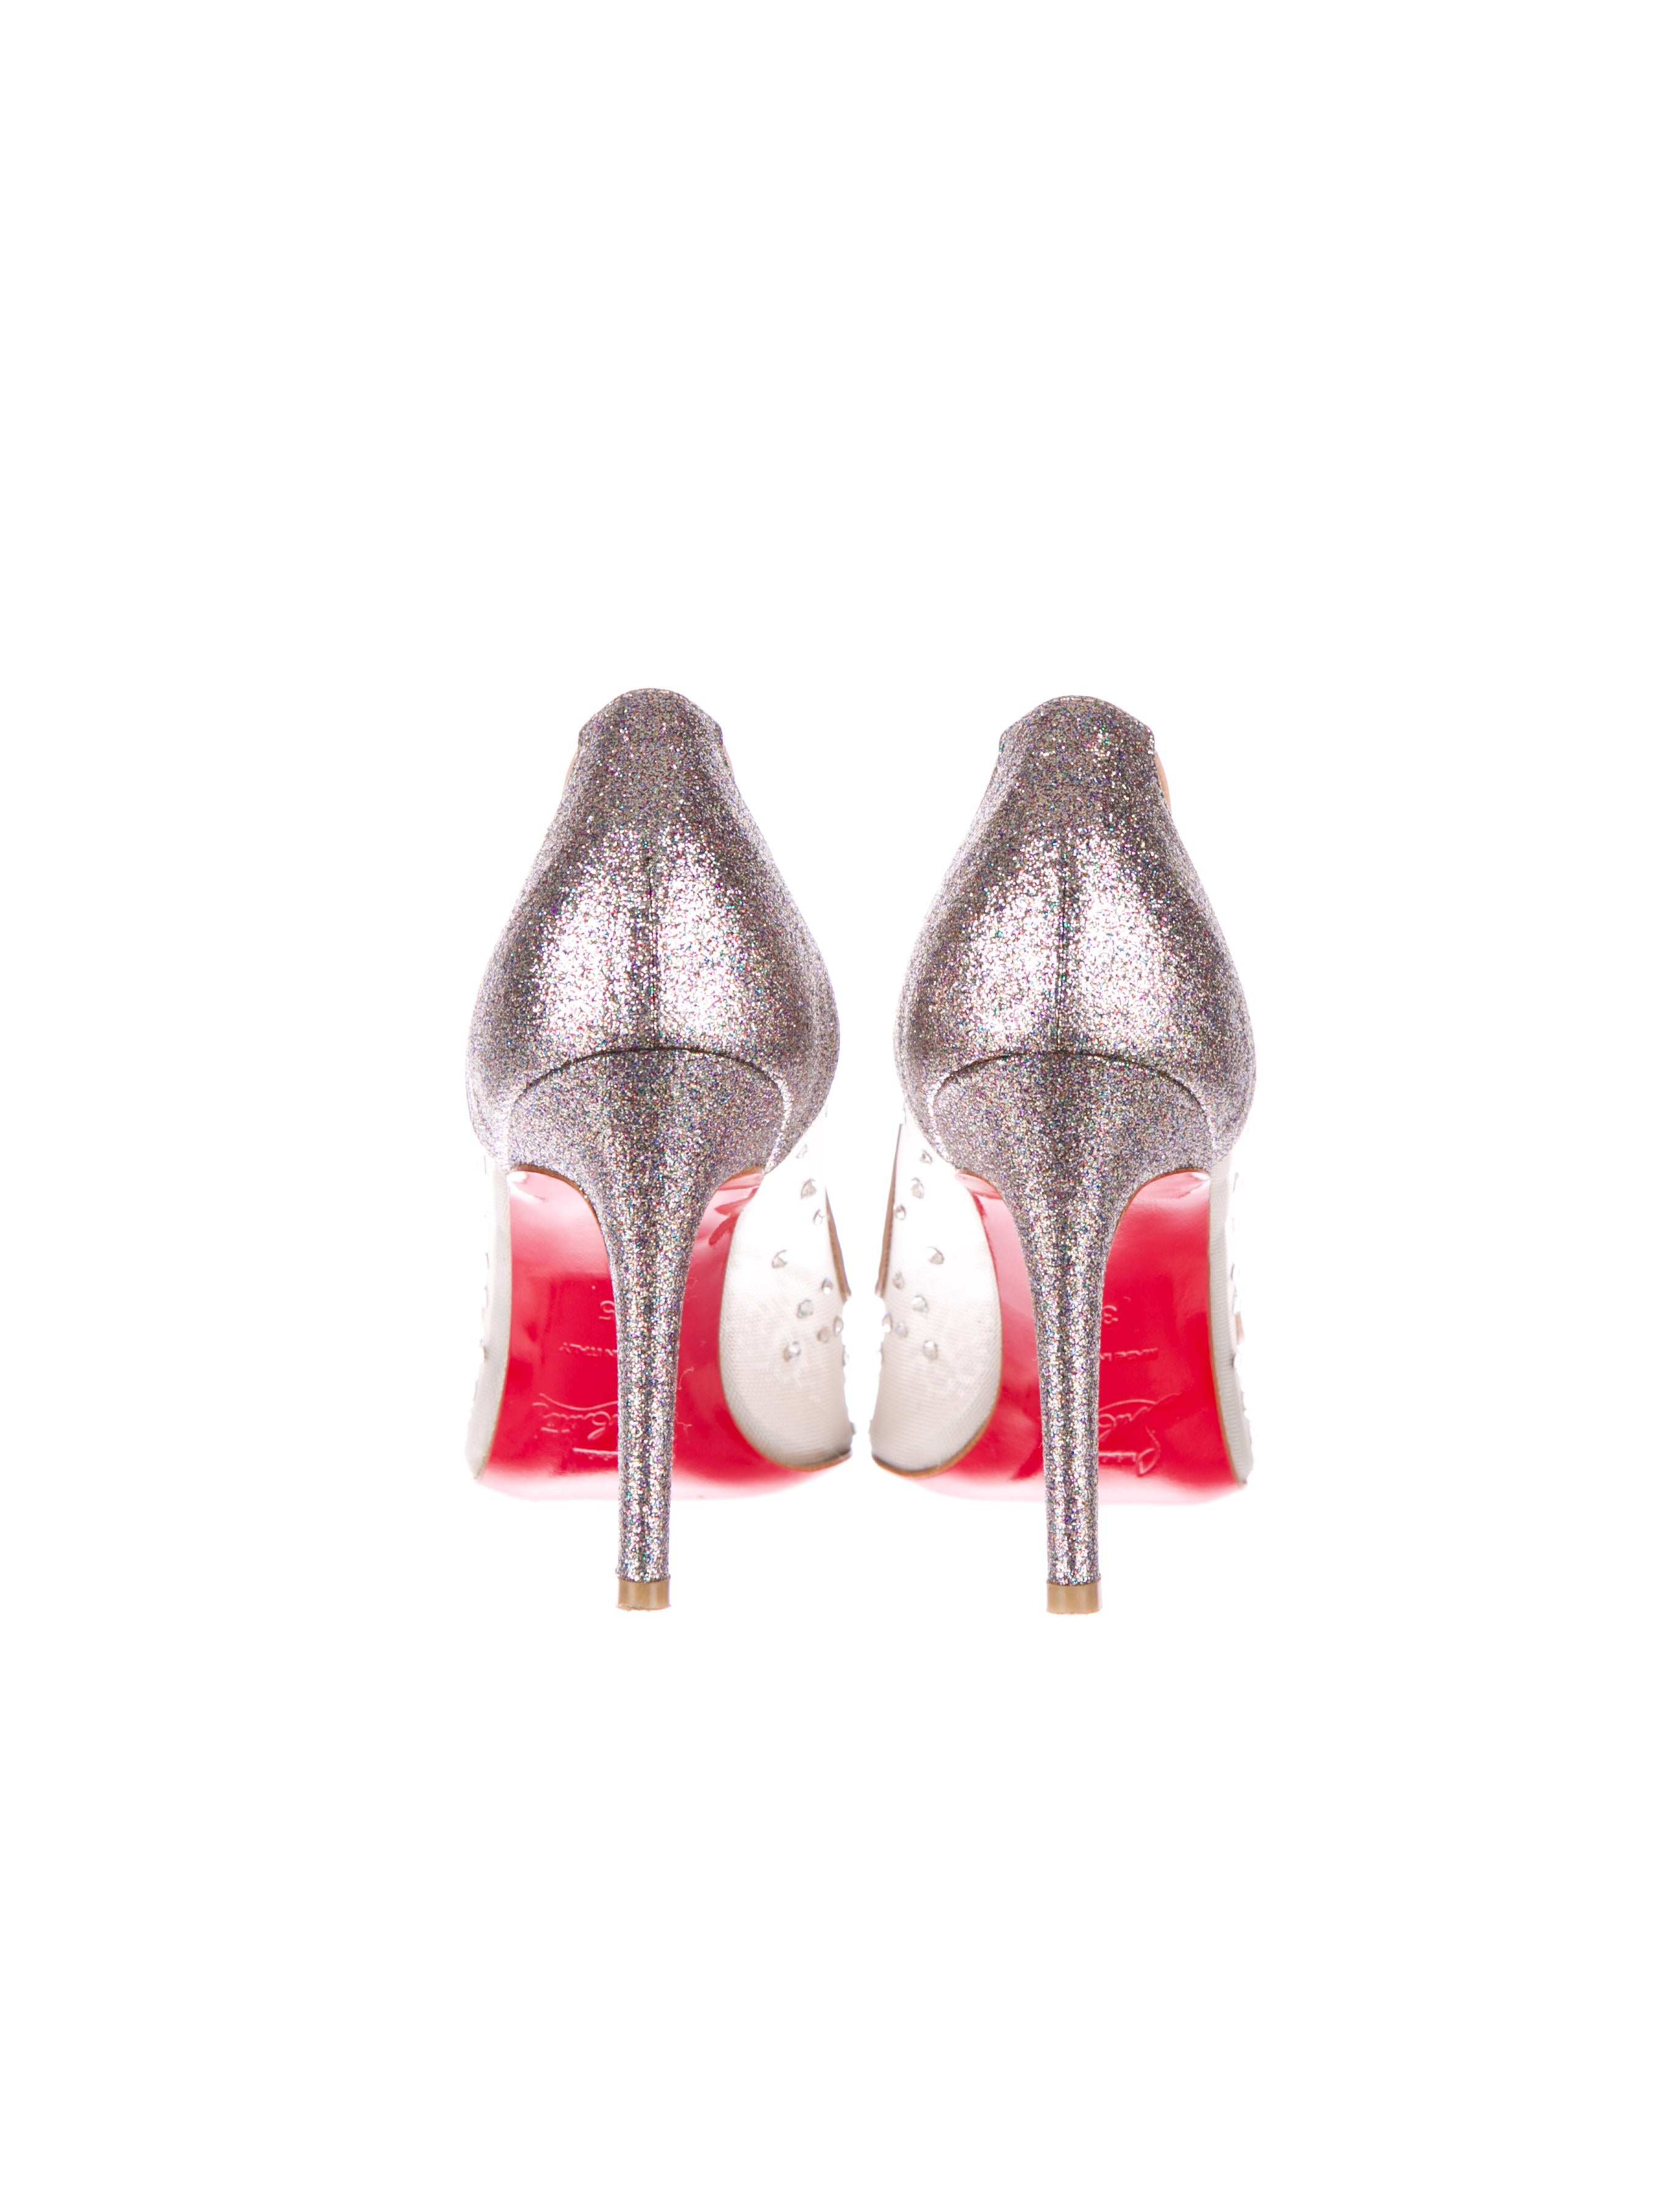 Christian Louboutin Follies Strass Pumps - Shoes - CHT33808 | The ...